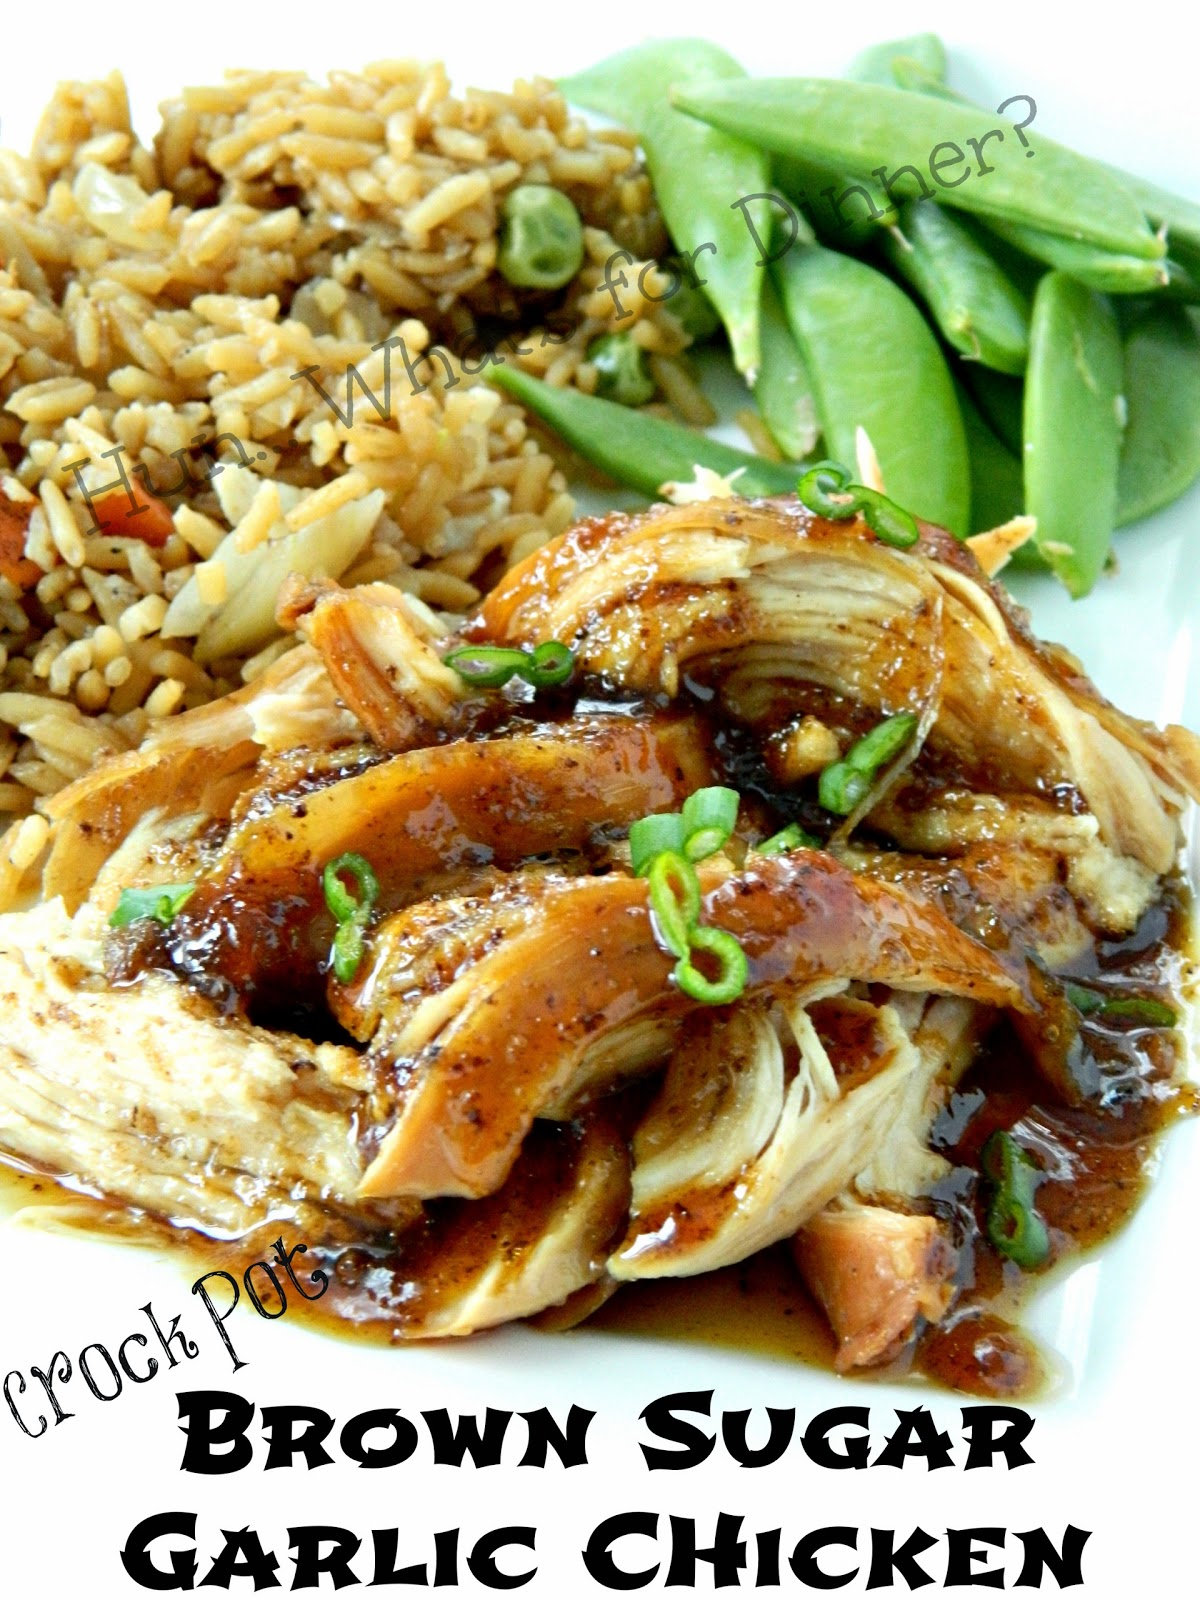 Brown Sugar and Garlic Chicken in the Crock Pot